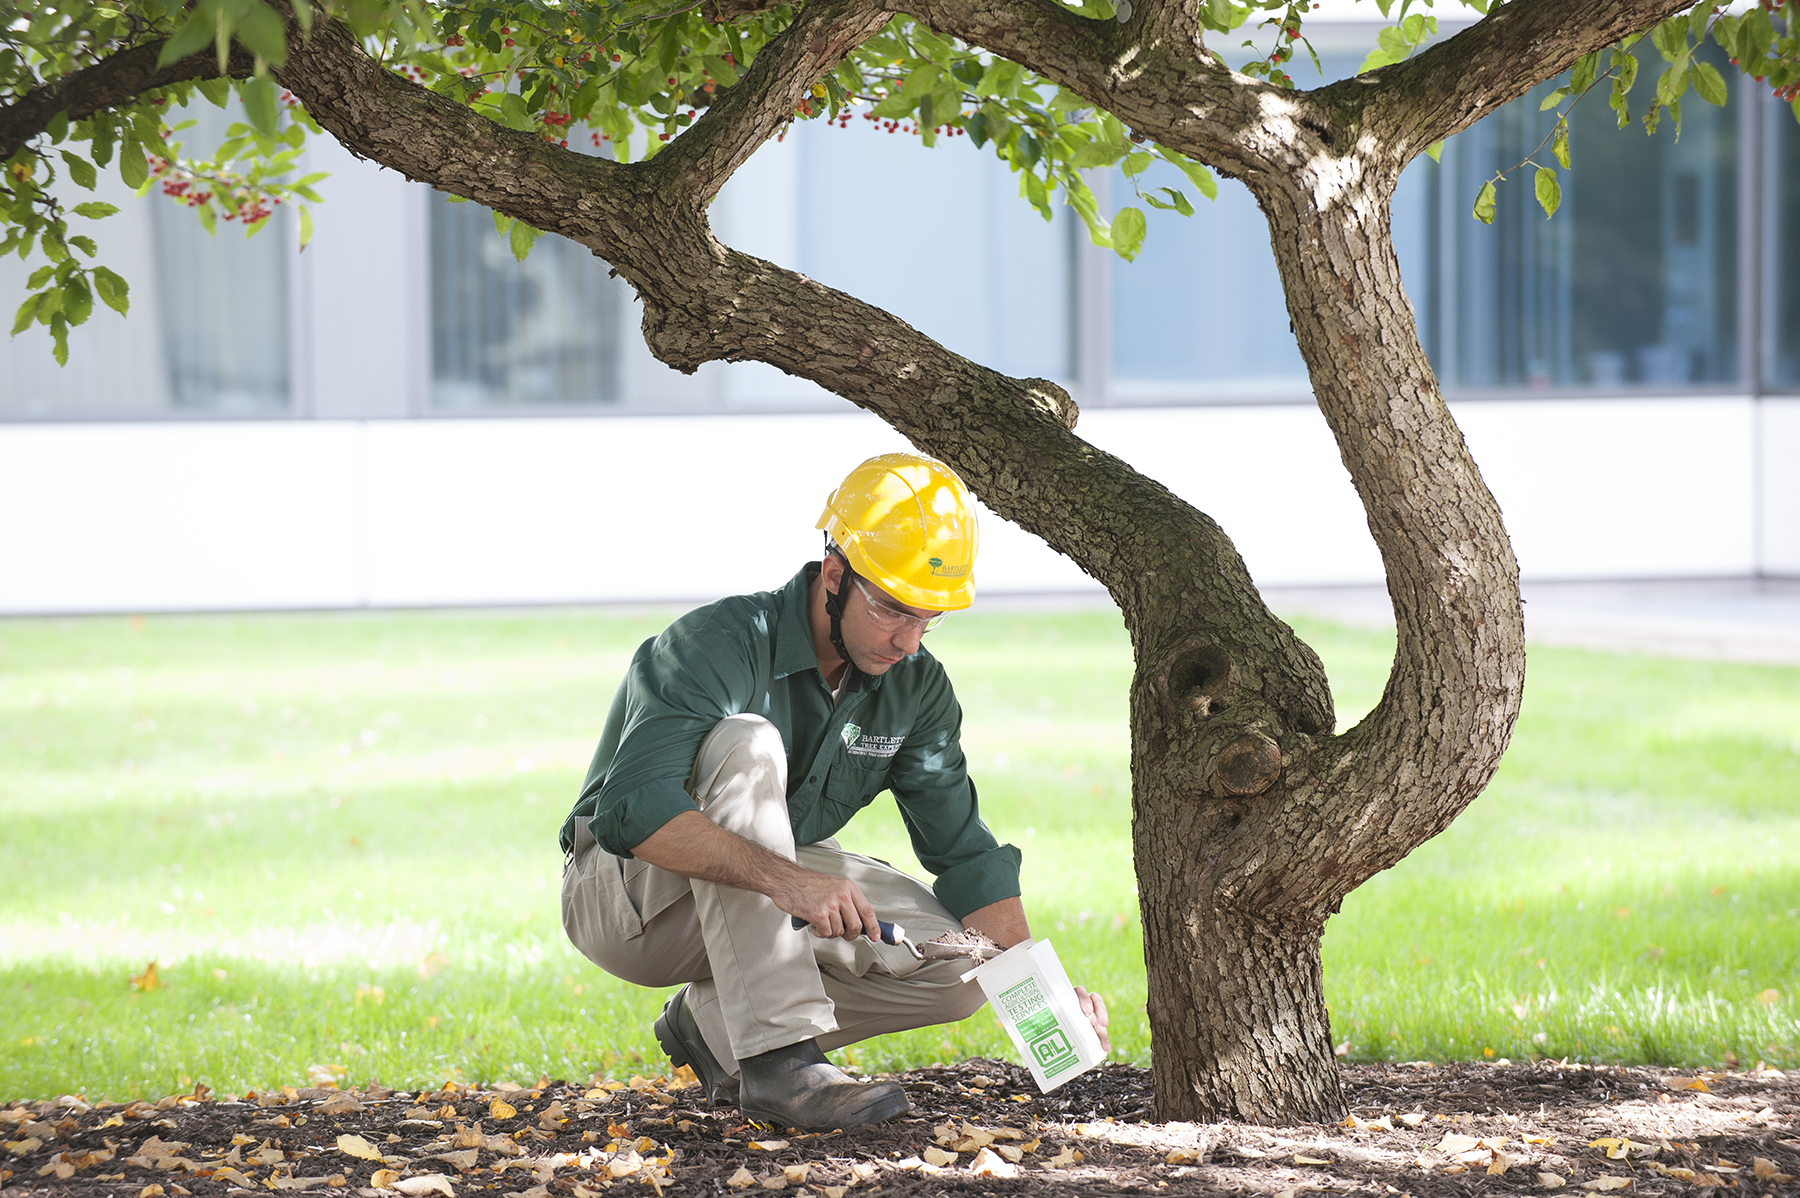 A soil sample collected from beneath the tree will be analyzed to ensure soil treatments adequately address problems.